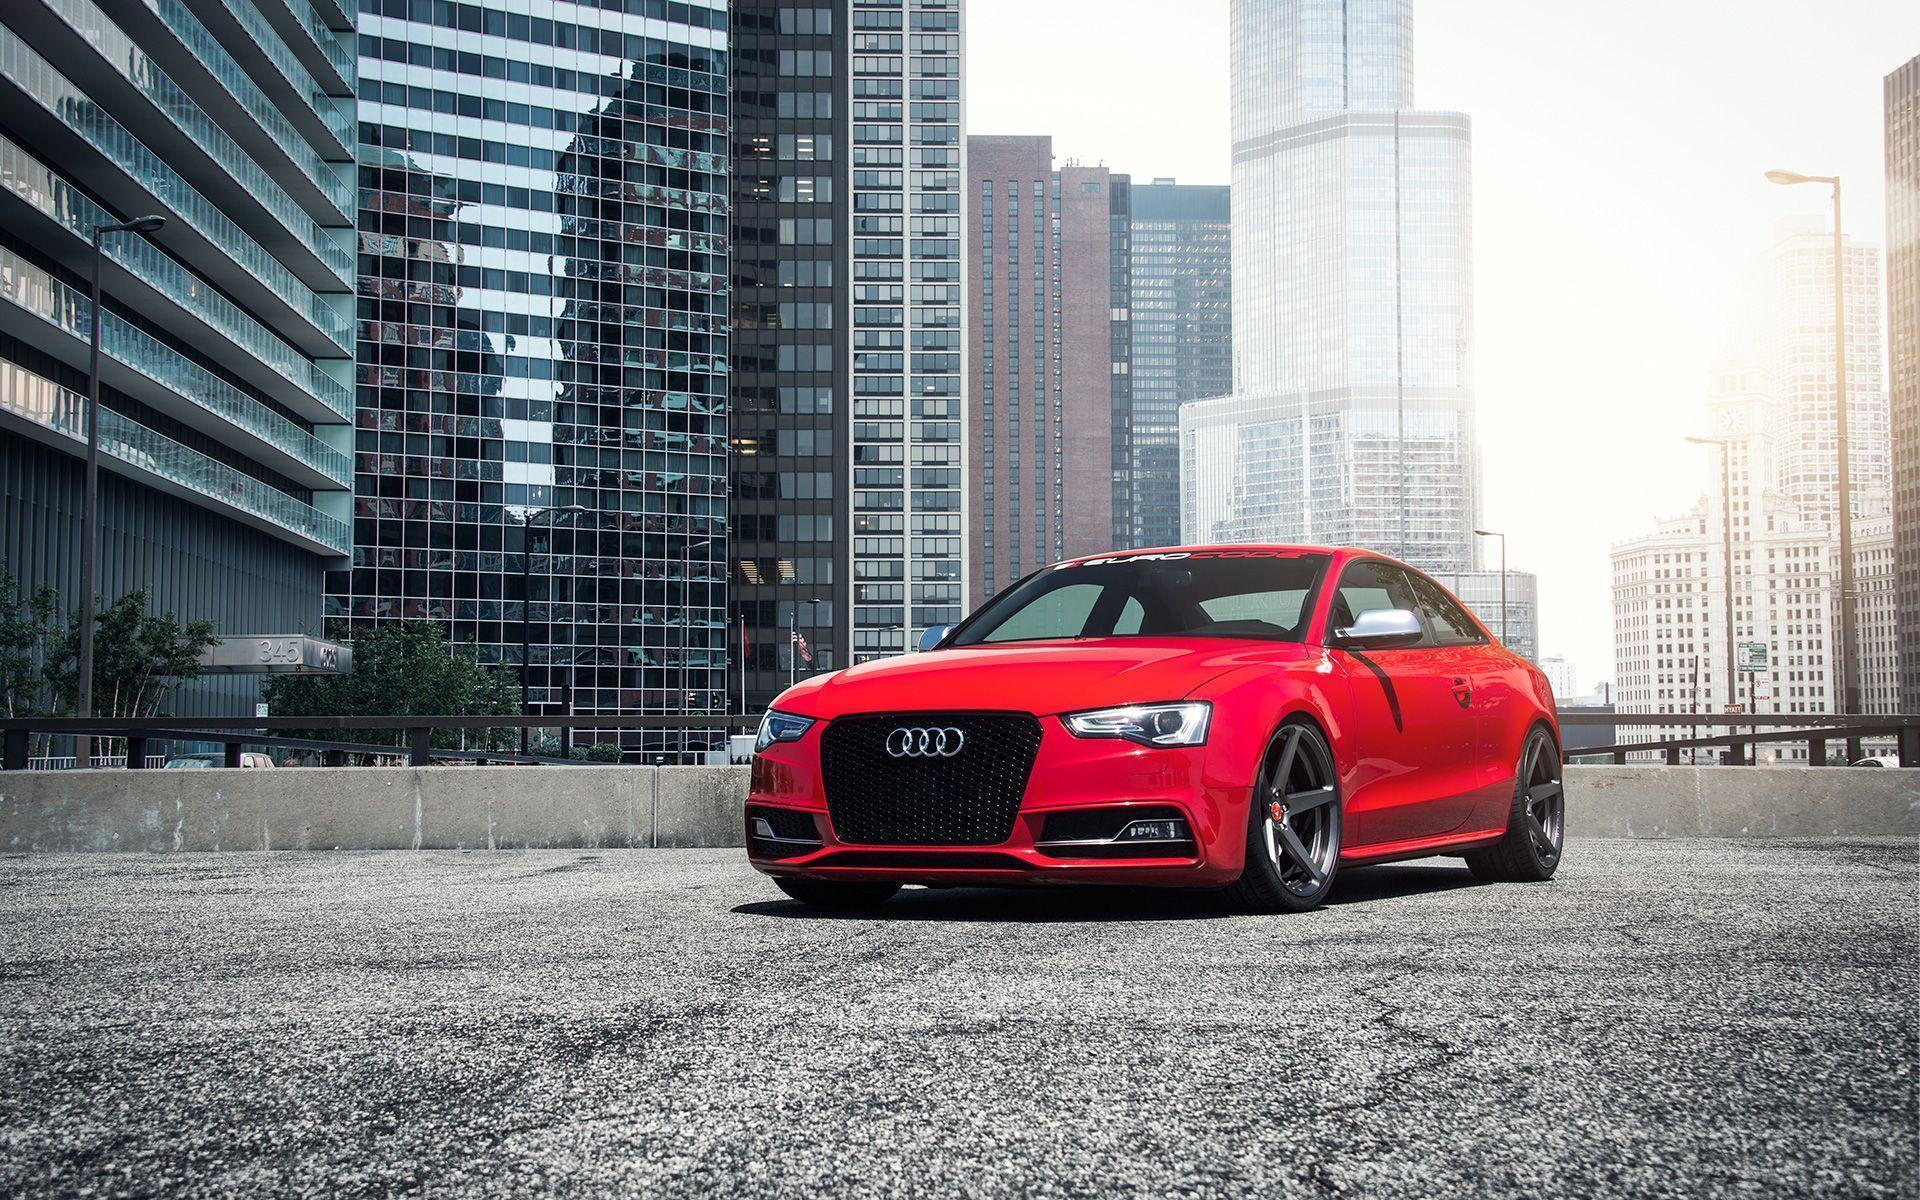 Eurocode Tuning Audi Wallpapers